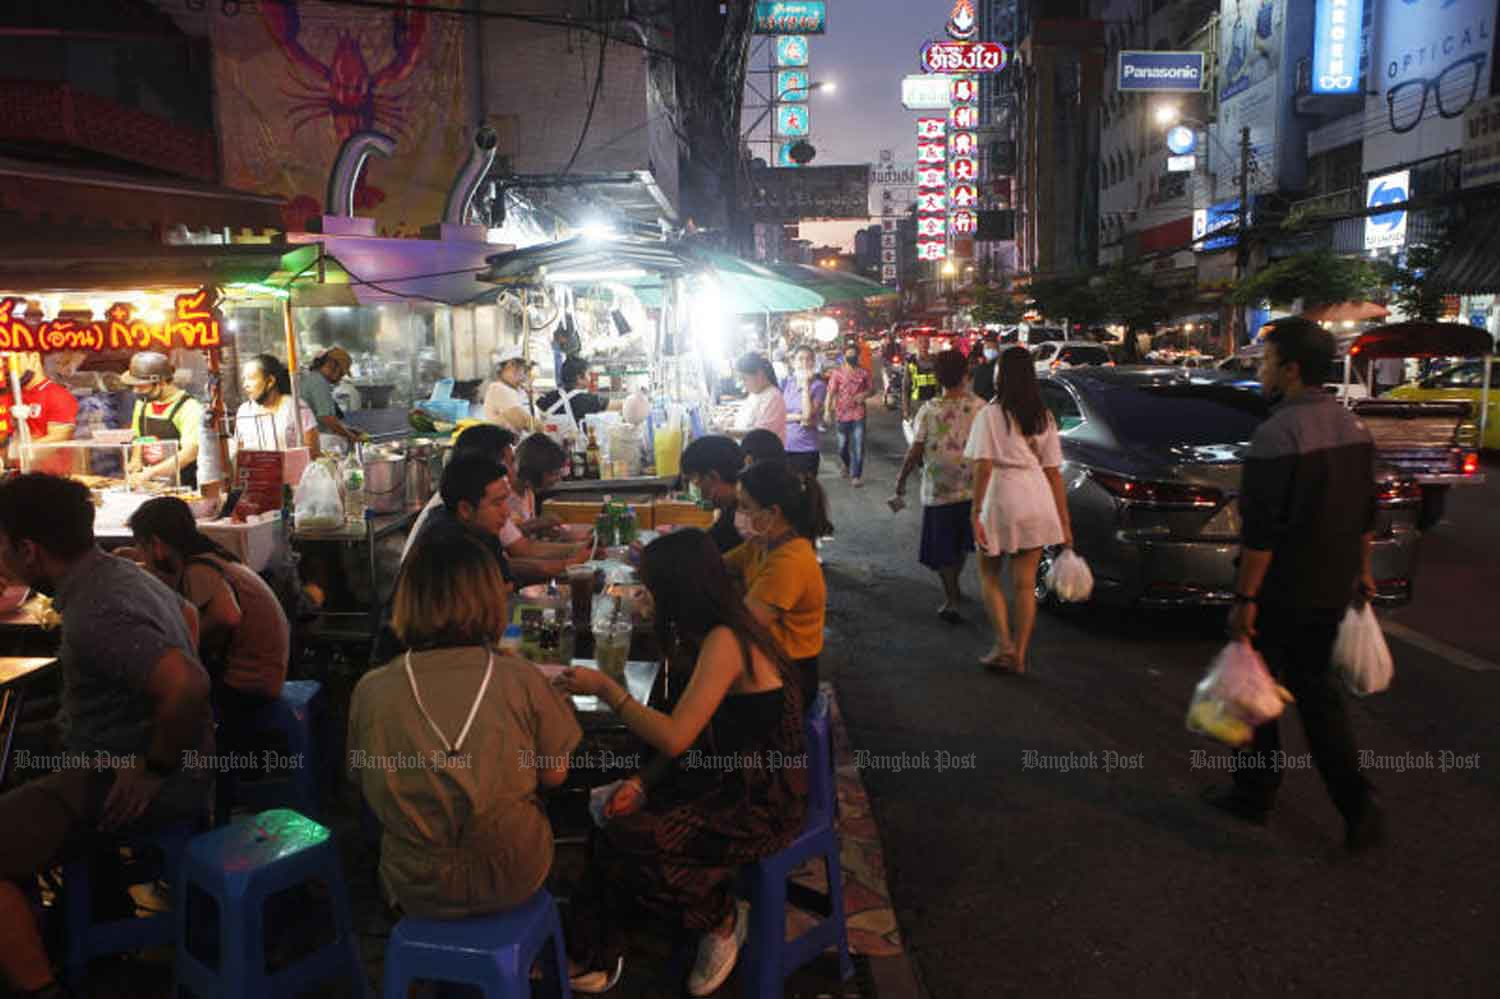 People sit down to eat at food stalls along Yaowarat Road, one of Bangkok's main street food attractions, last month. (Photo by Nutthawat Wicheanbut)